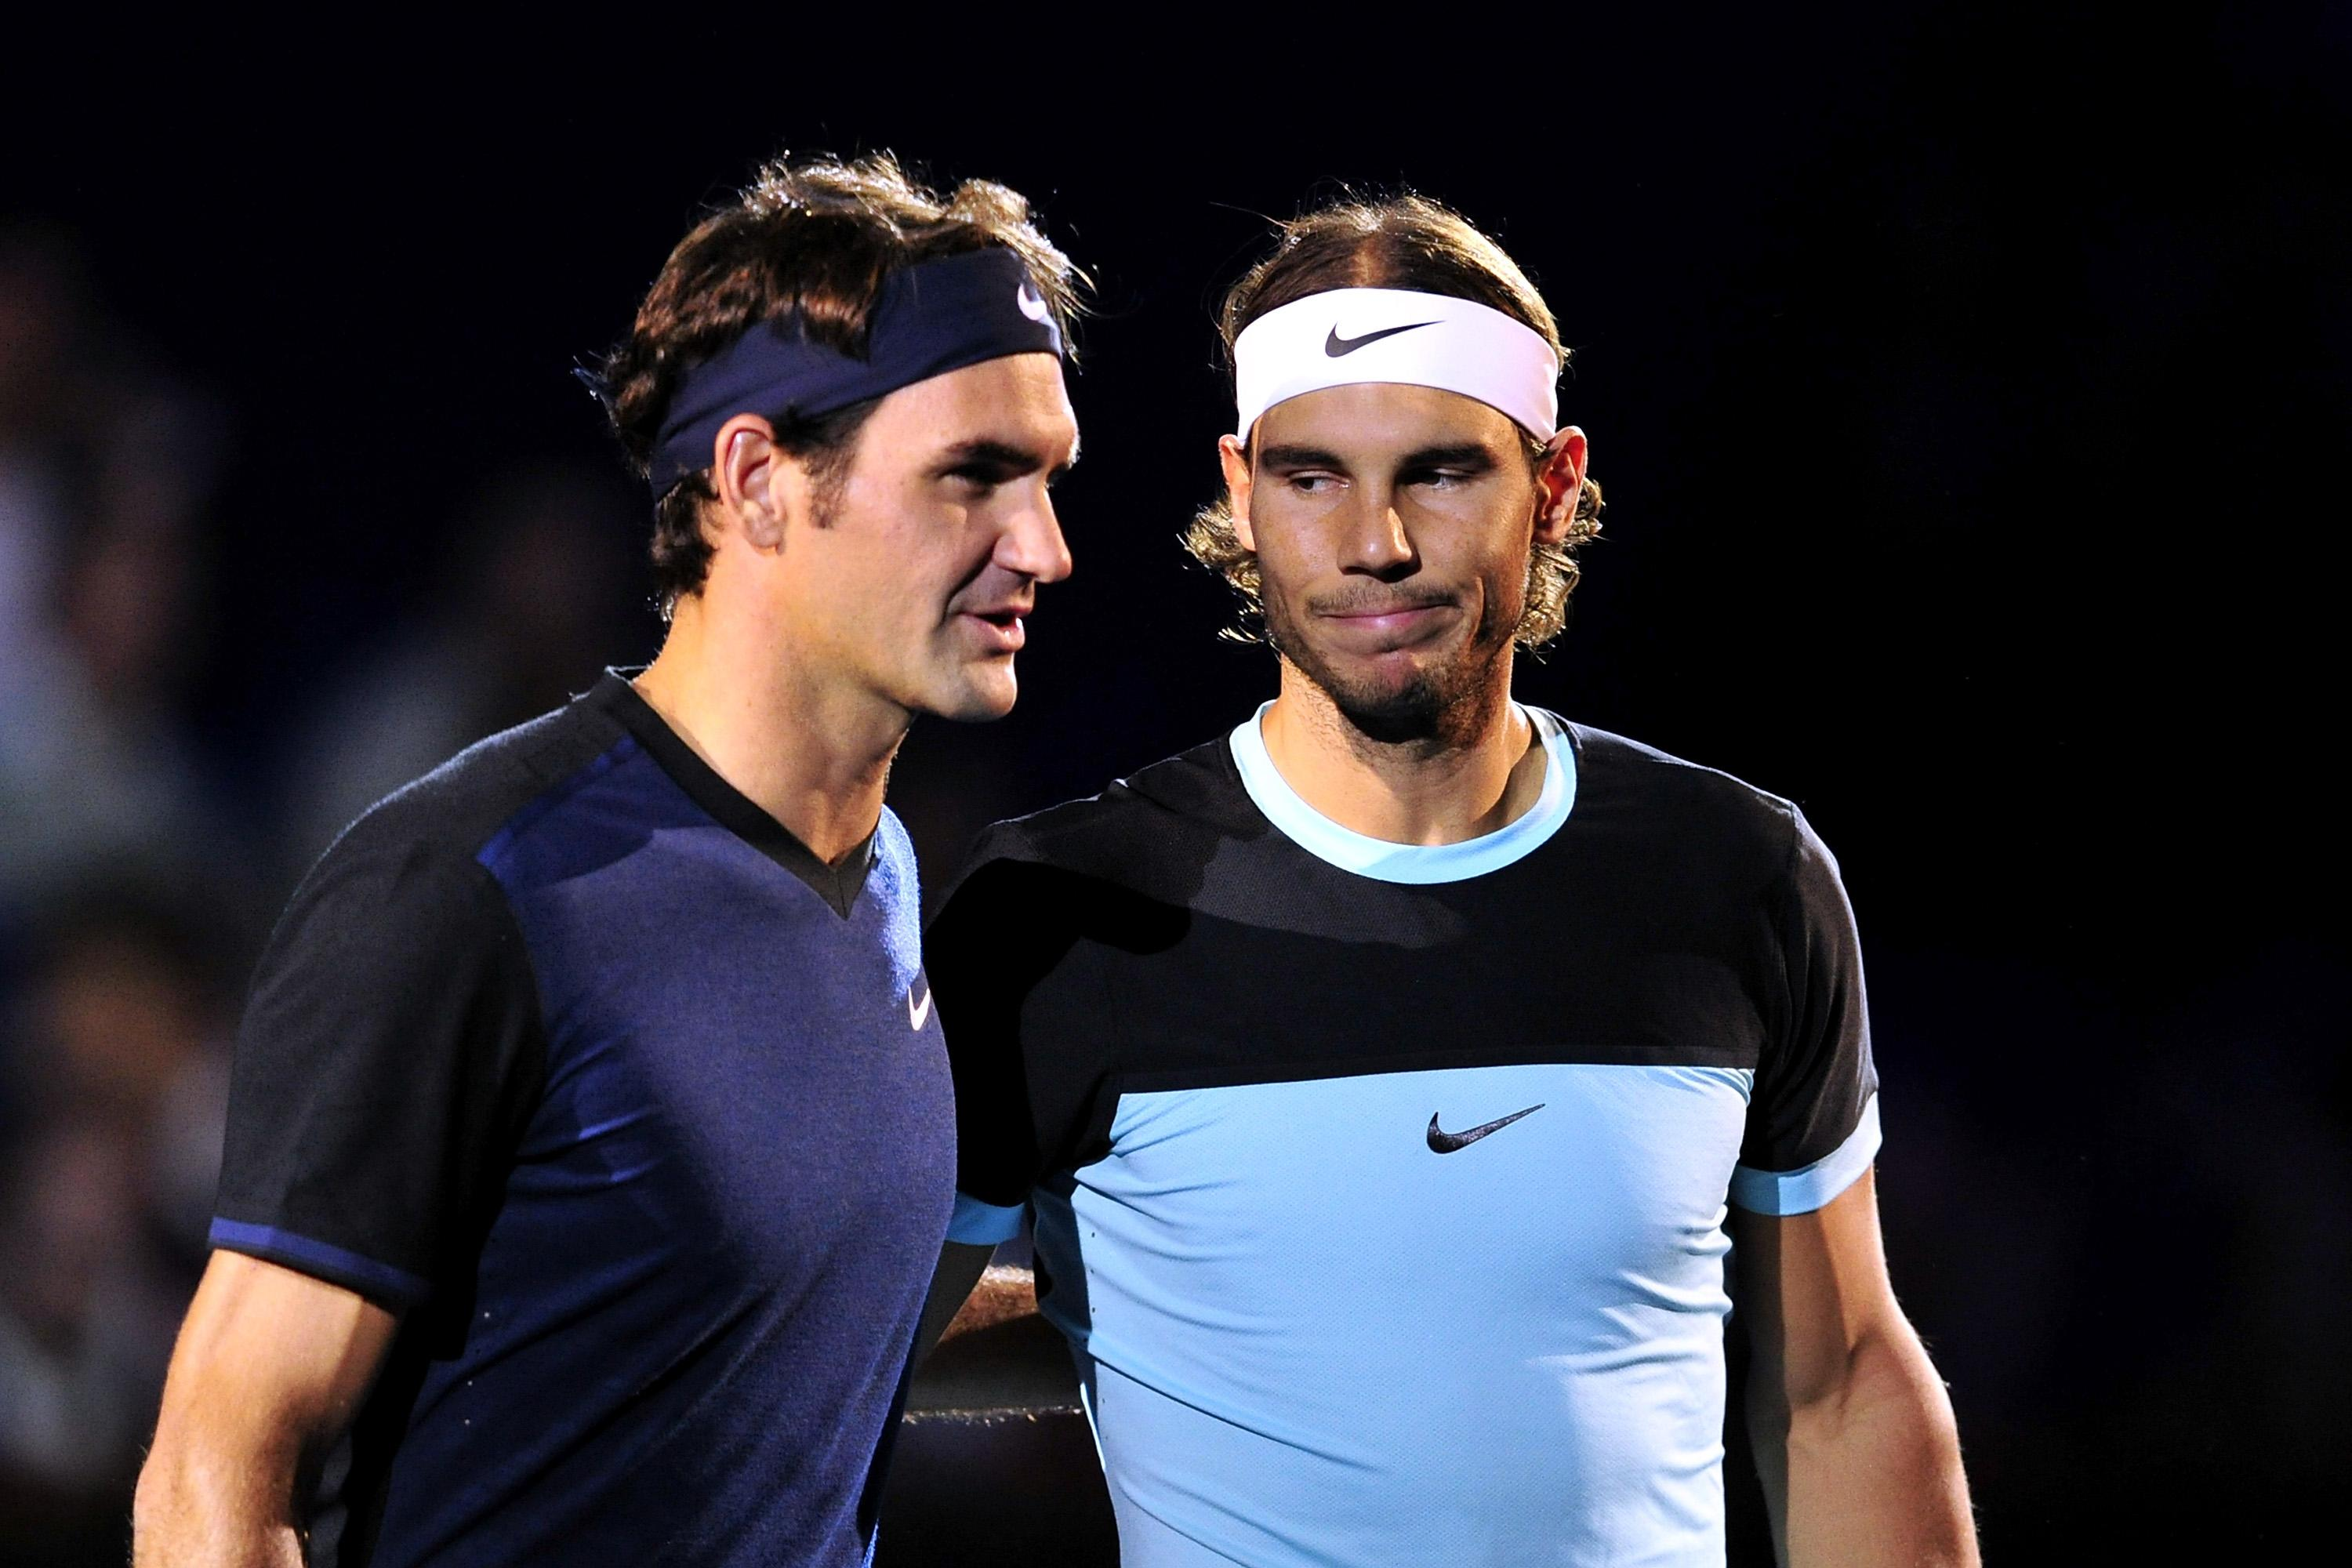 Rafael Nadal to play Roger Federer in Australian Open final